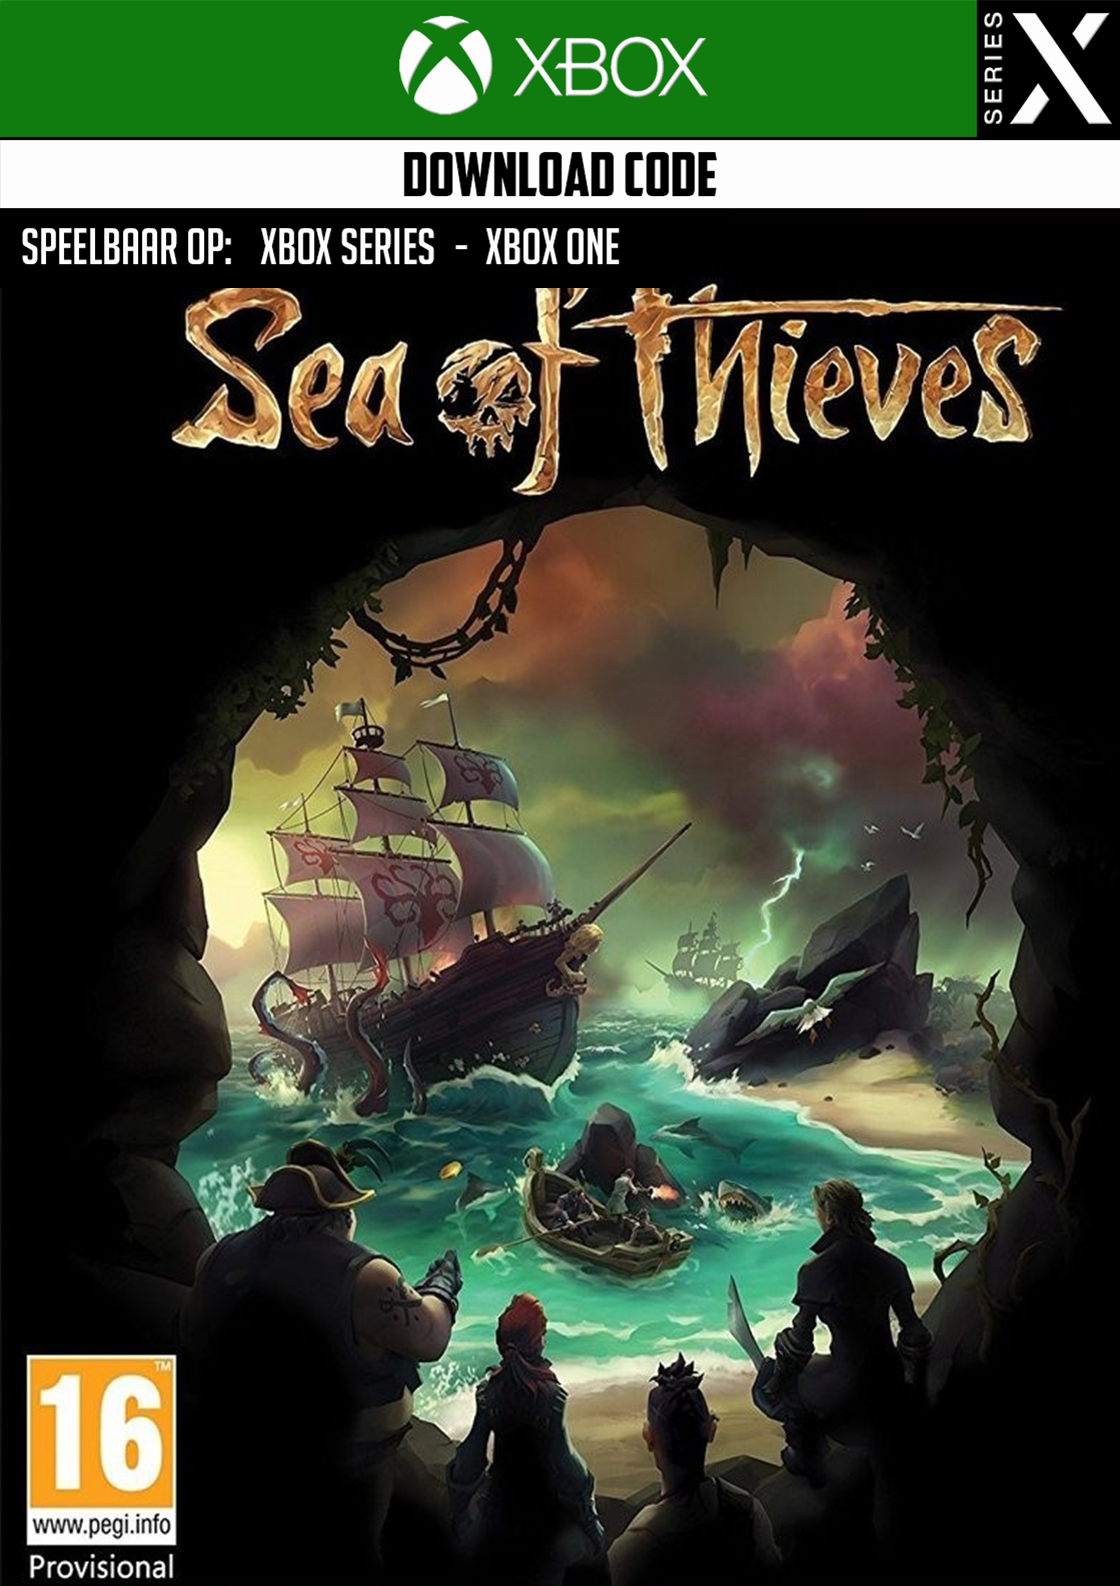 Sea of Thieves - Xbox Download (Smart Delivery)